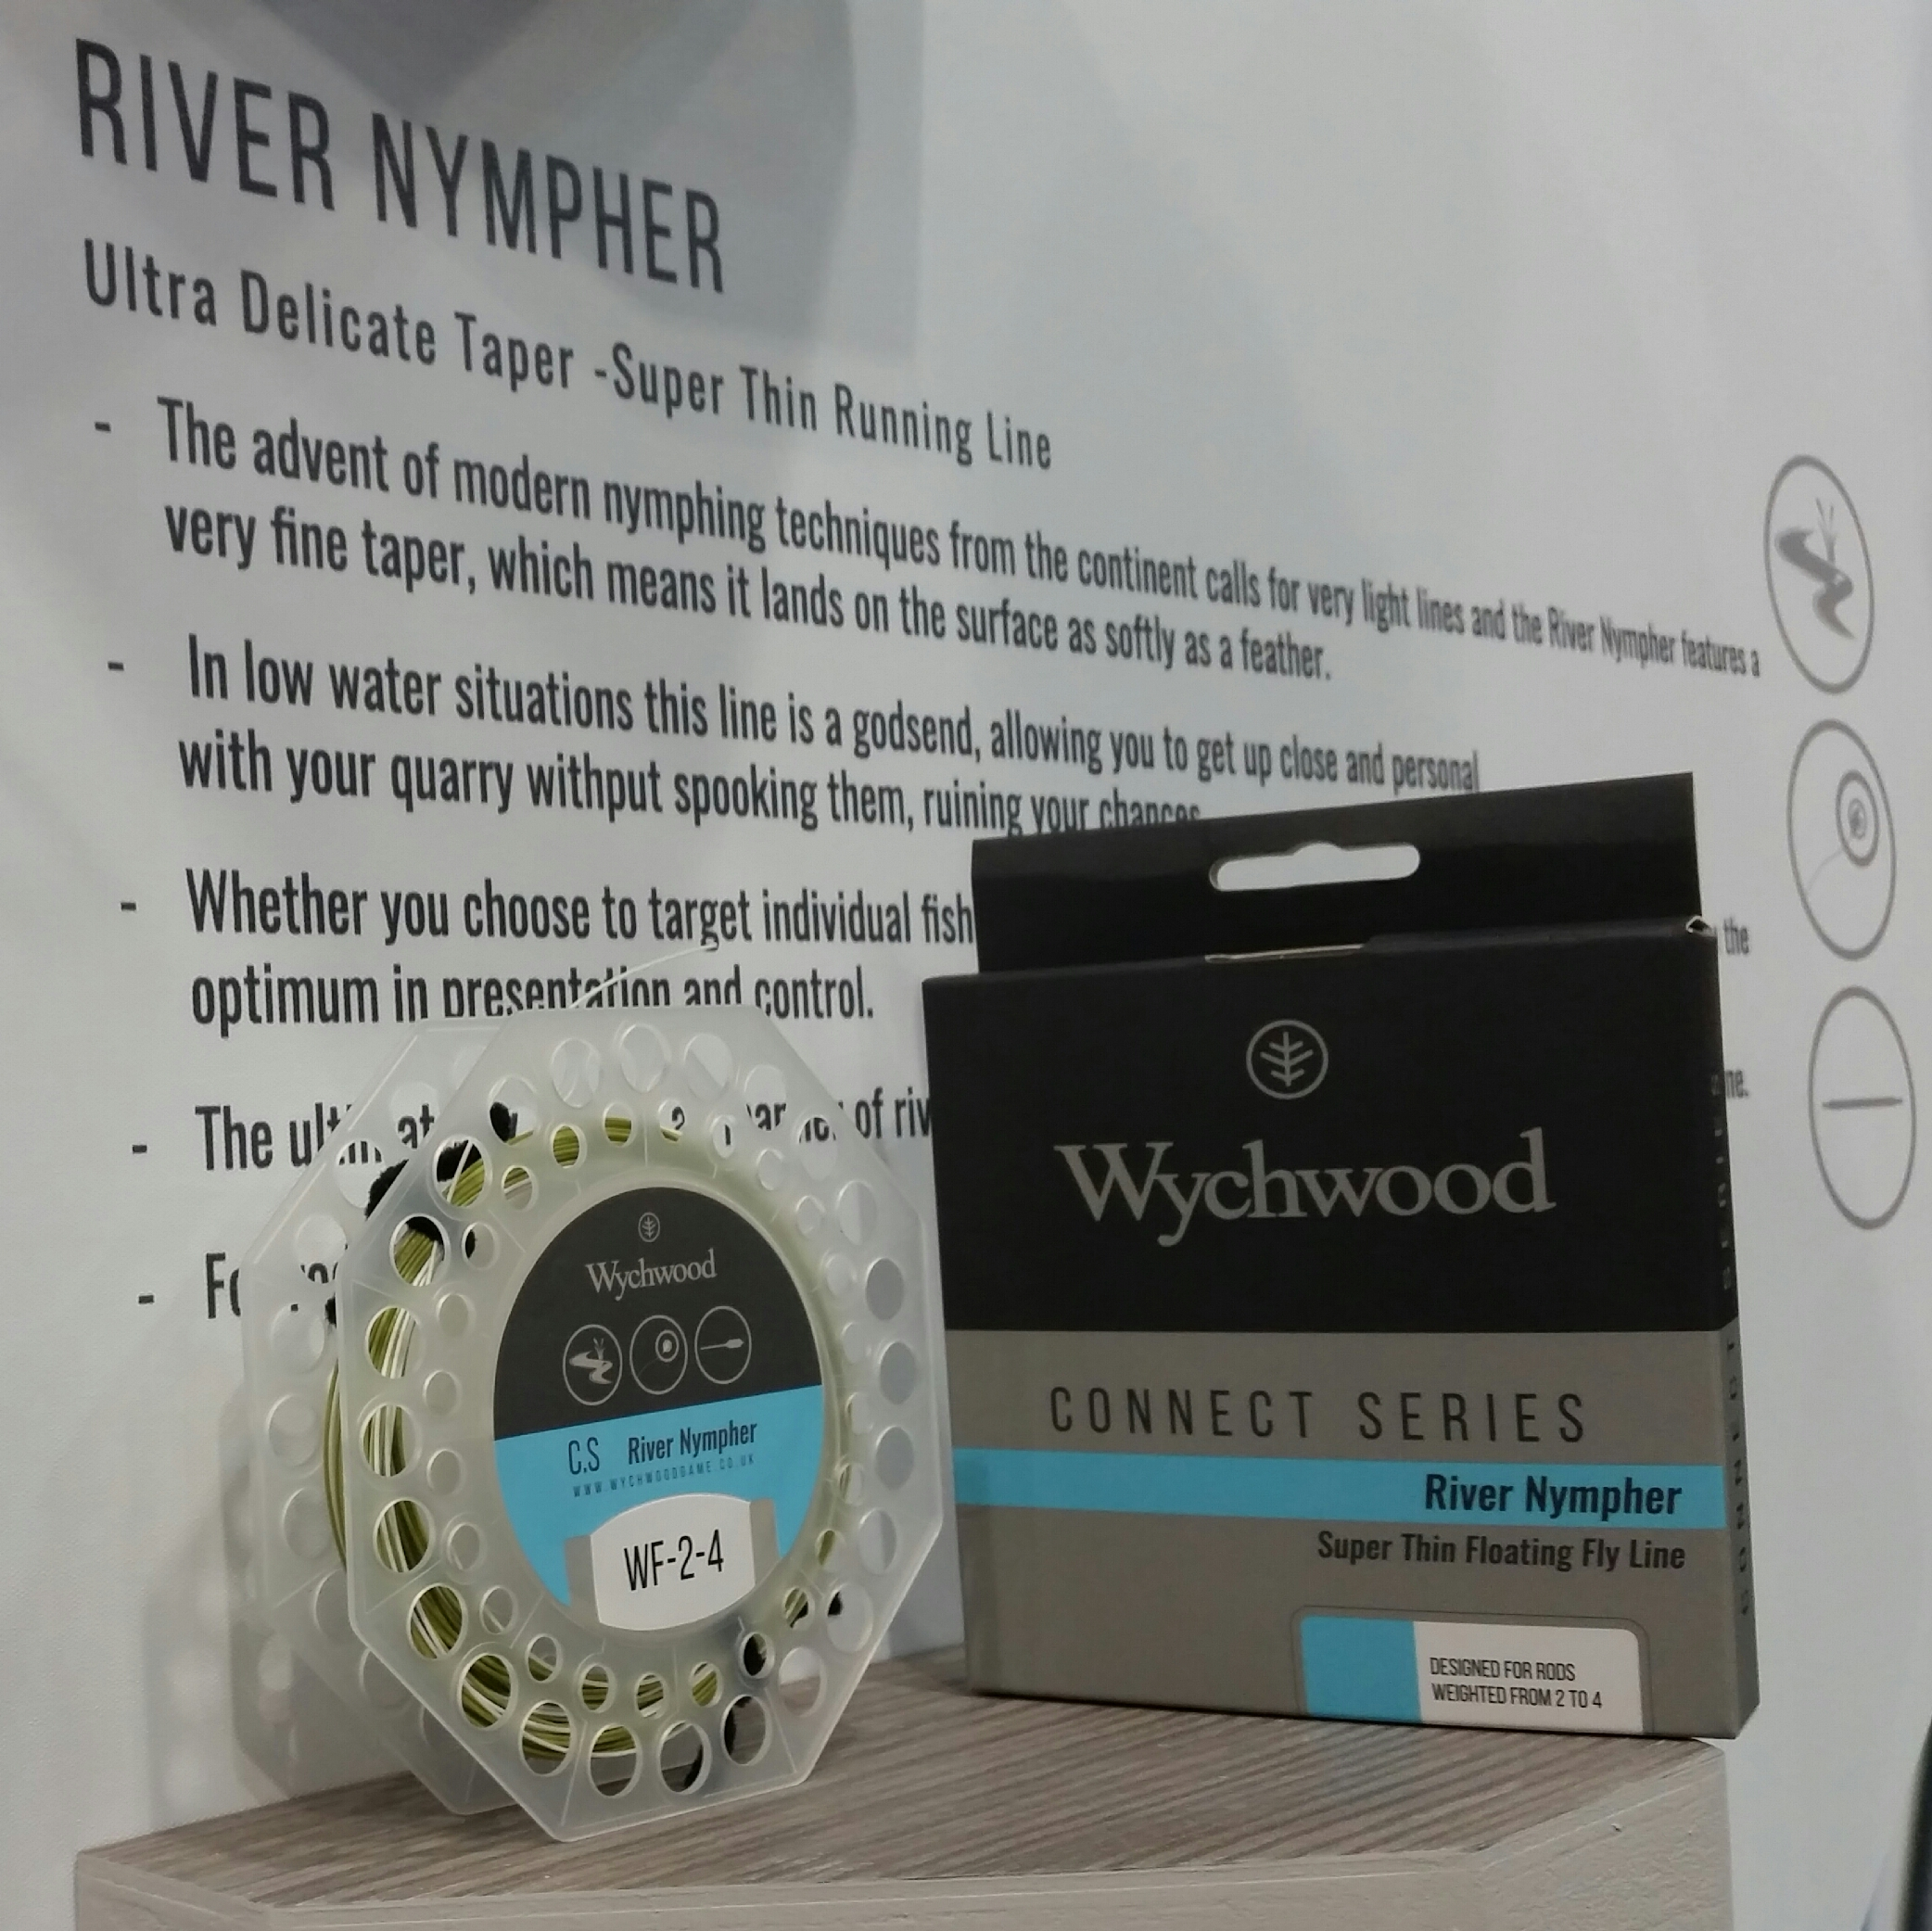 Wychwood Connect Series River Nympher Super Thin Running Fly Fishing Line